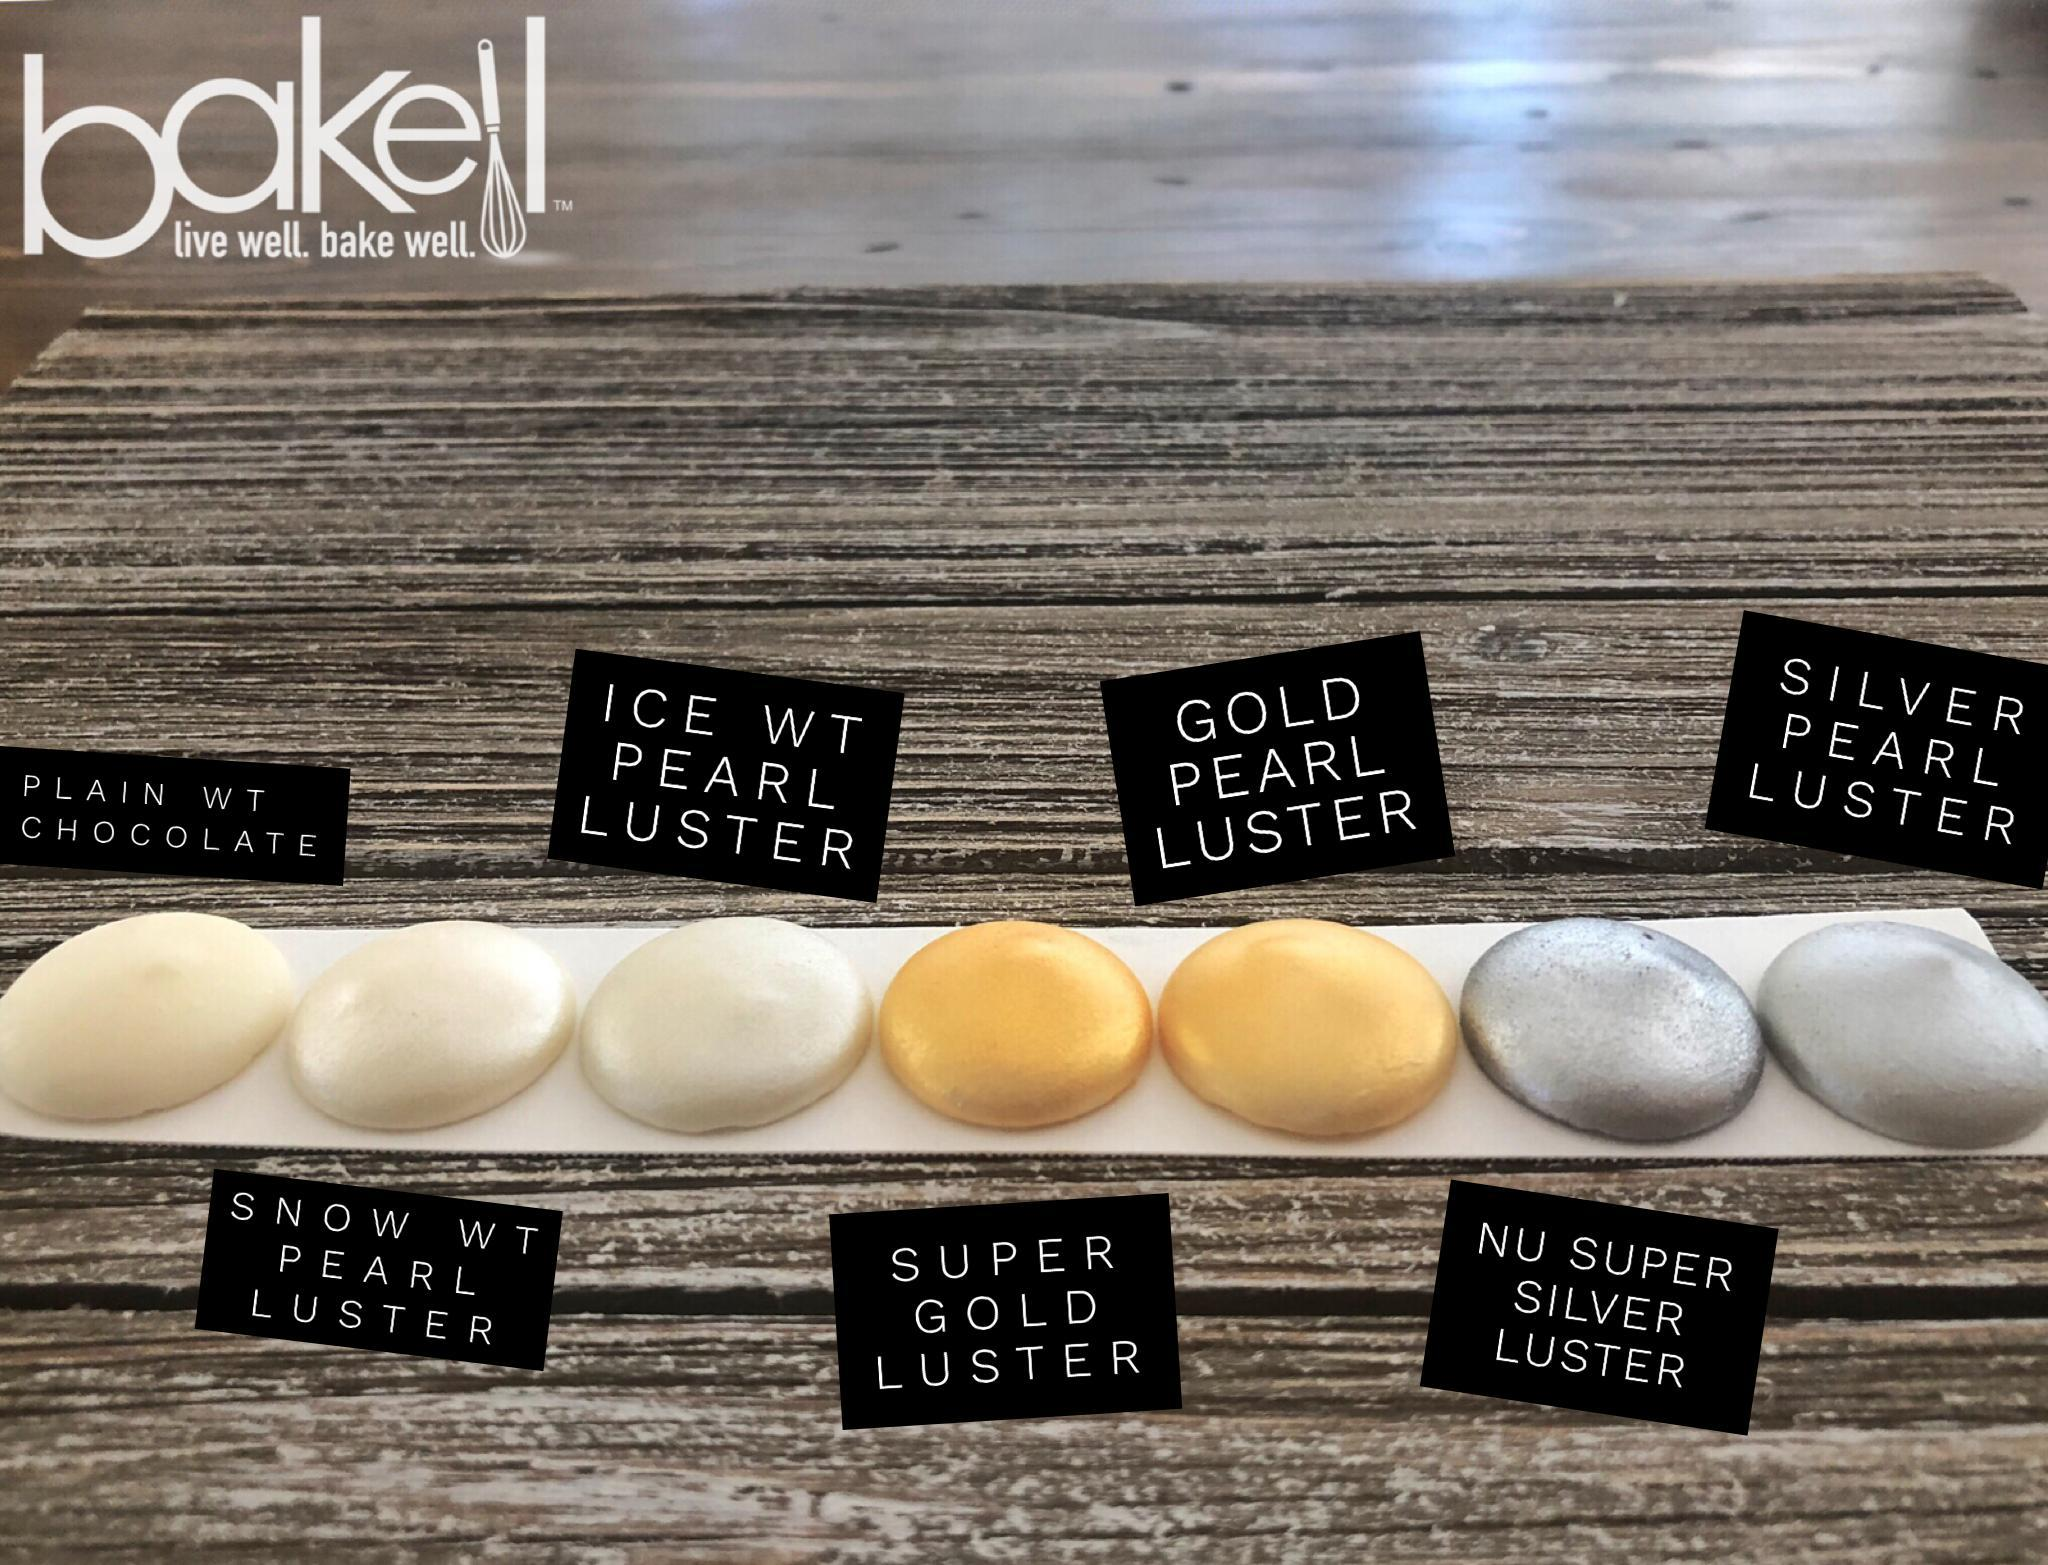 Super Gold Edible Luster Dust & Edible Paint Color Chart | FDA Approved Metallic Edible Glitter | Bakell® #1 site for FDA Compliant edible glitter & edible dust | Bakell.comr & edible dust | Bakell.com